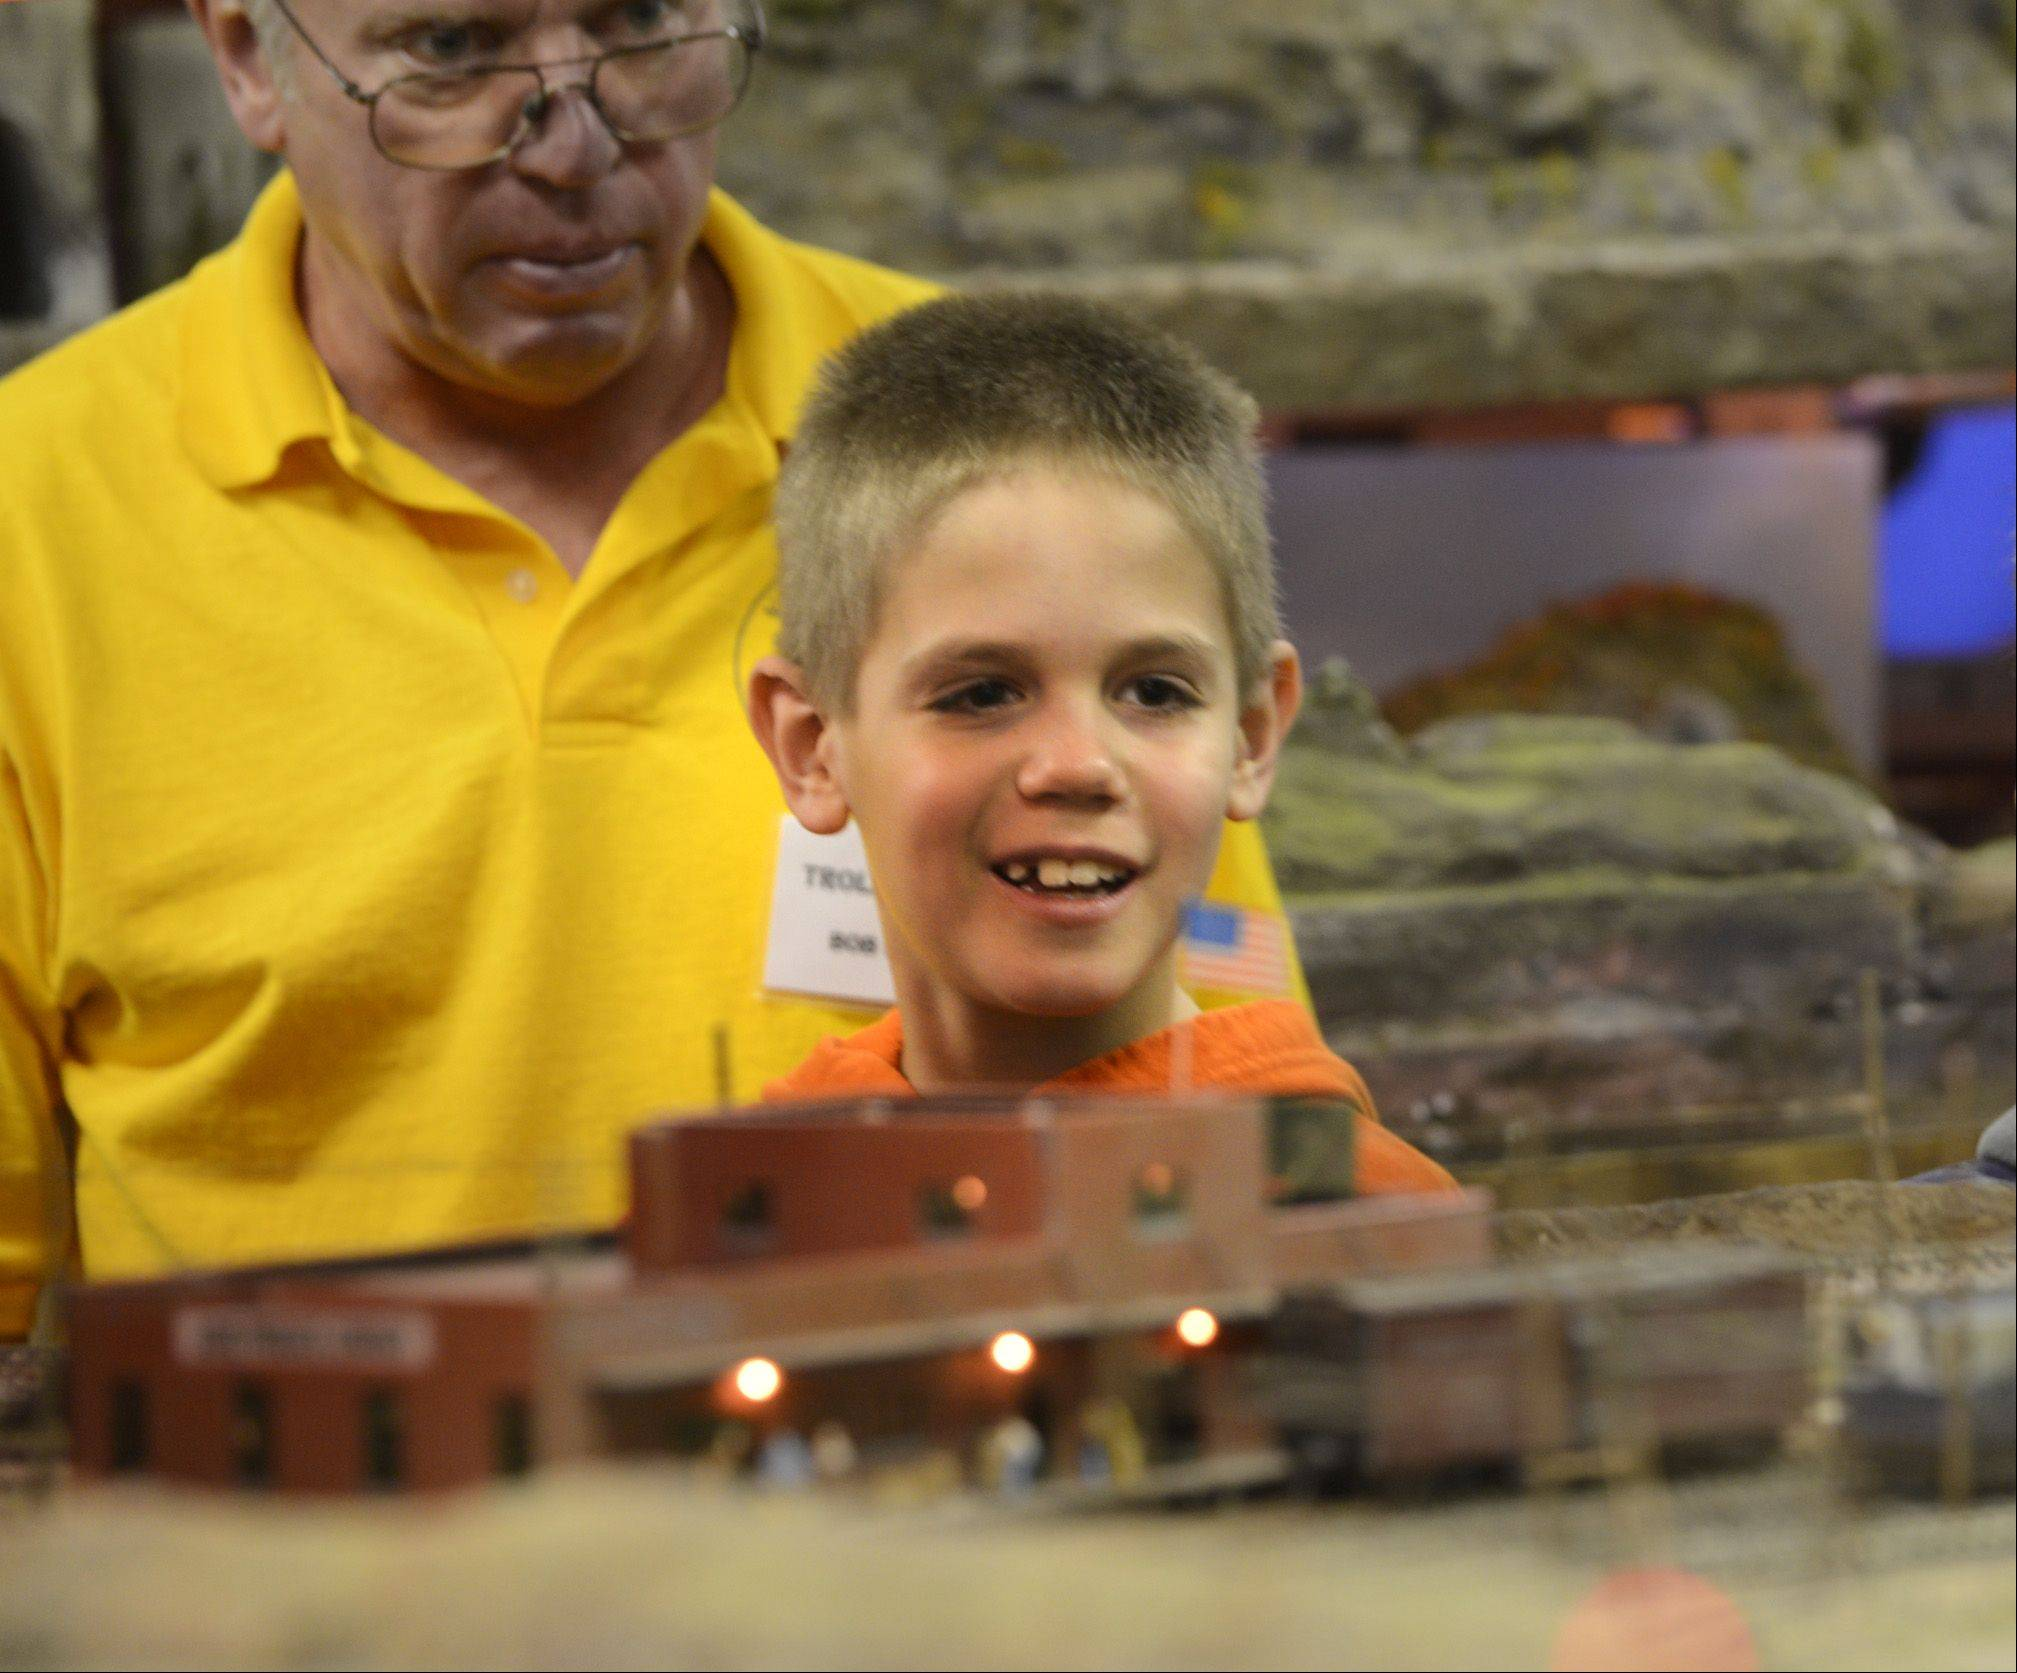 Nathan Stonehocker, 9, of Aurora, watches HO model trains run on 400 feet of track Sunday at the Valley Model Railroad Club open house in South Elgin at the Clintonville Station on Kenyon Road.